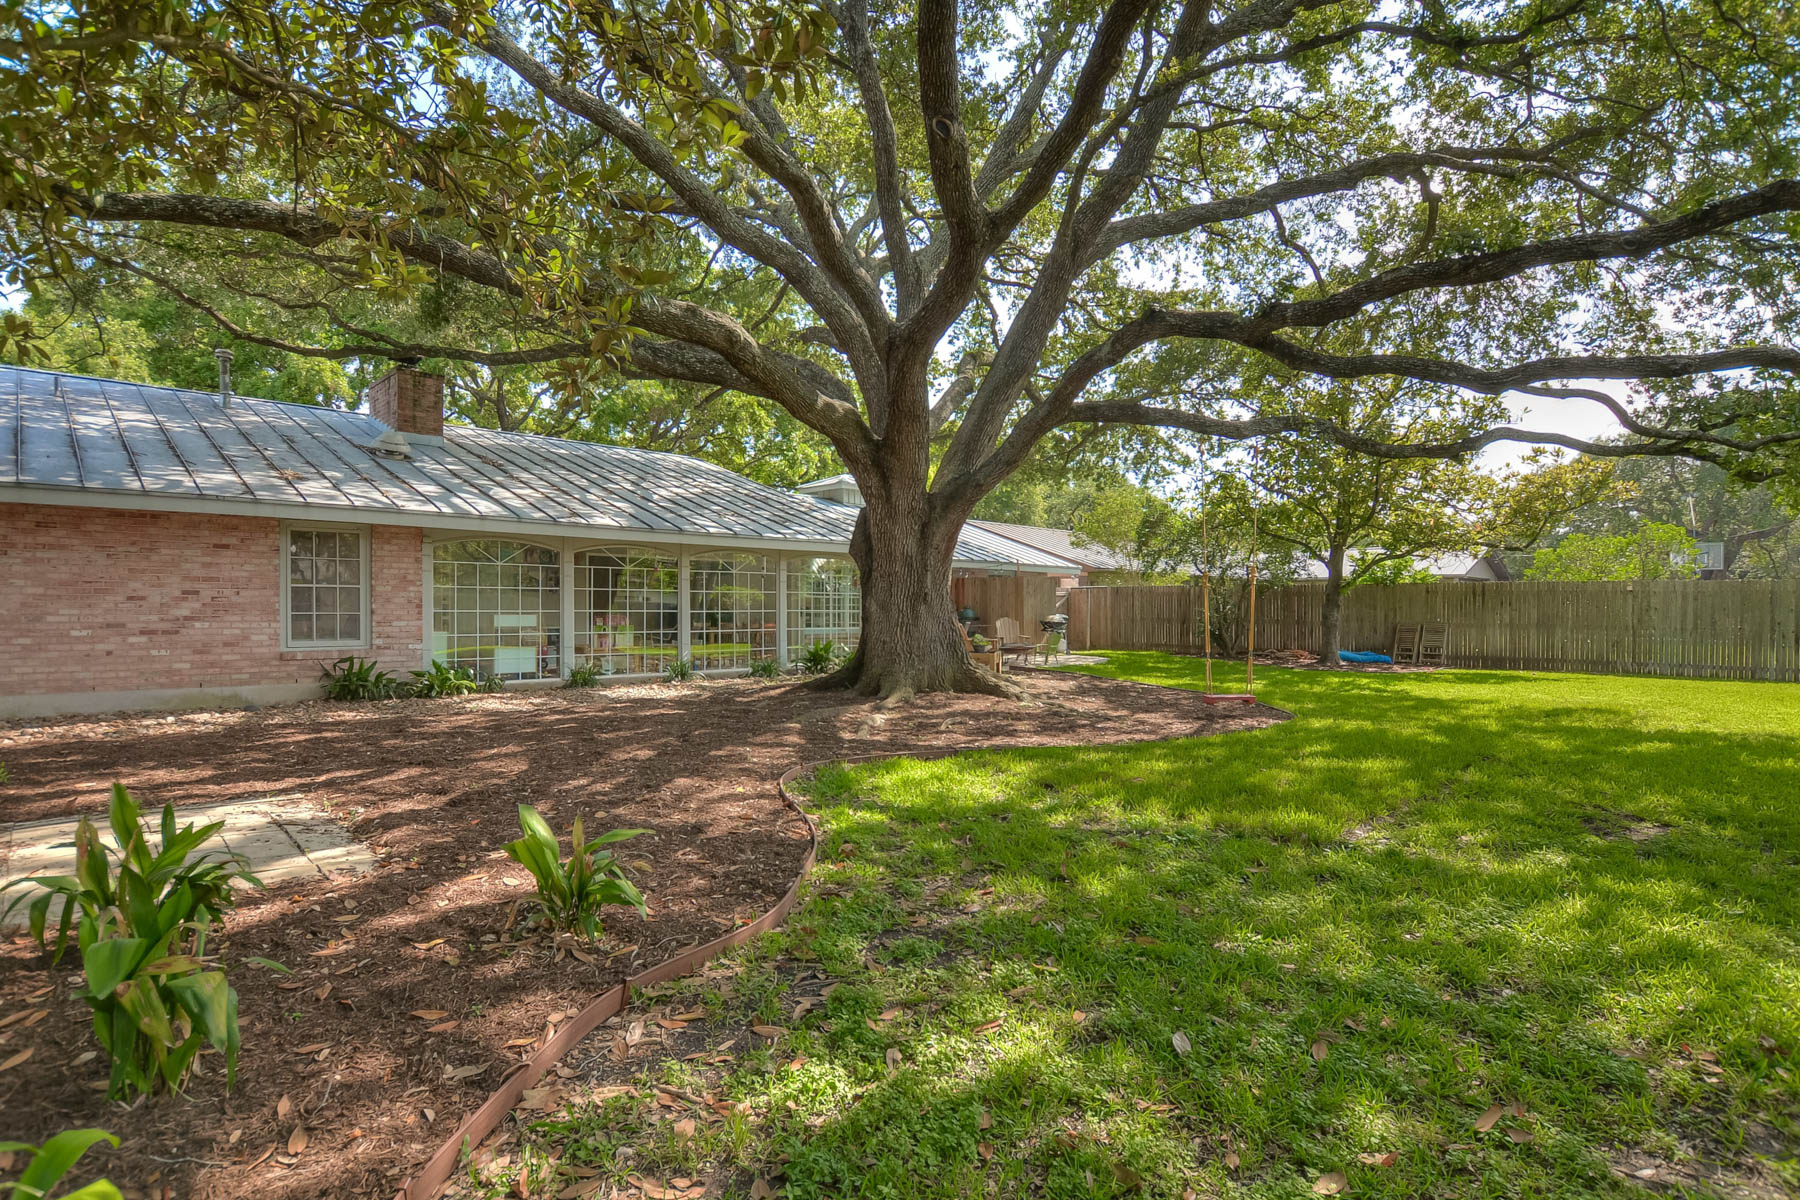 Additional photo for property listing at Spacious Home on a Quiet Street in AHISD 231 Hillview Dr San Antonio, Texas 78209 United States